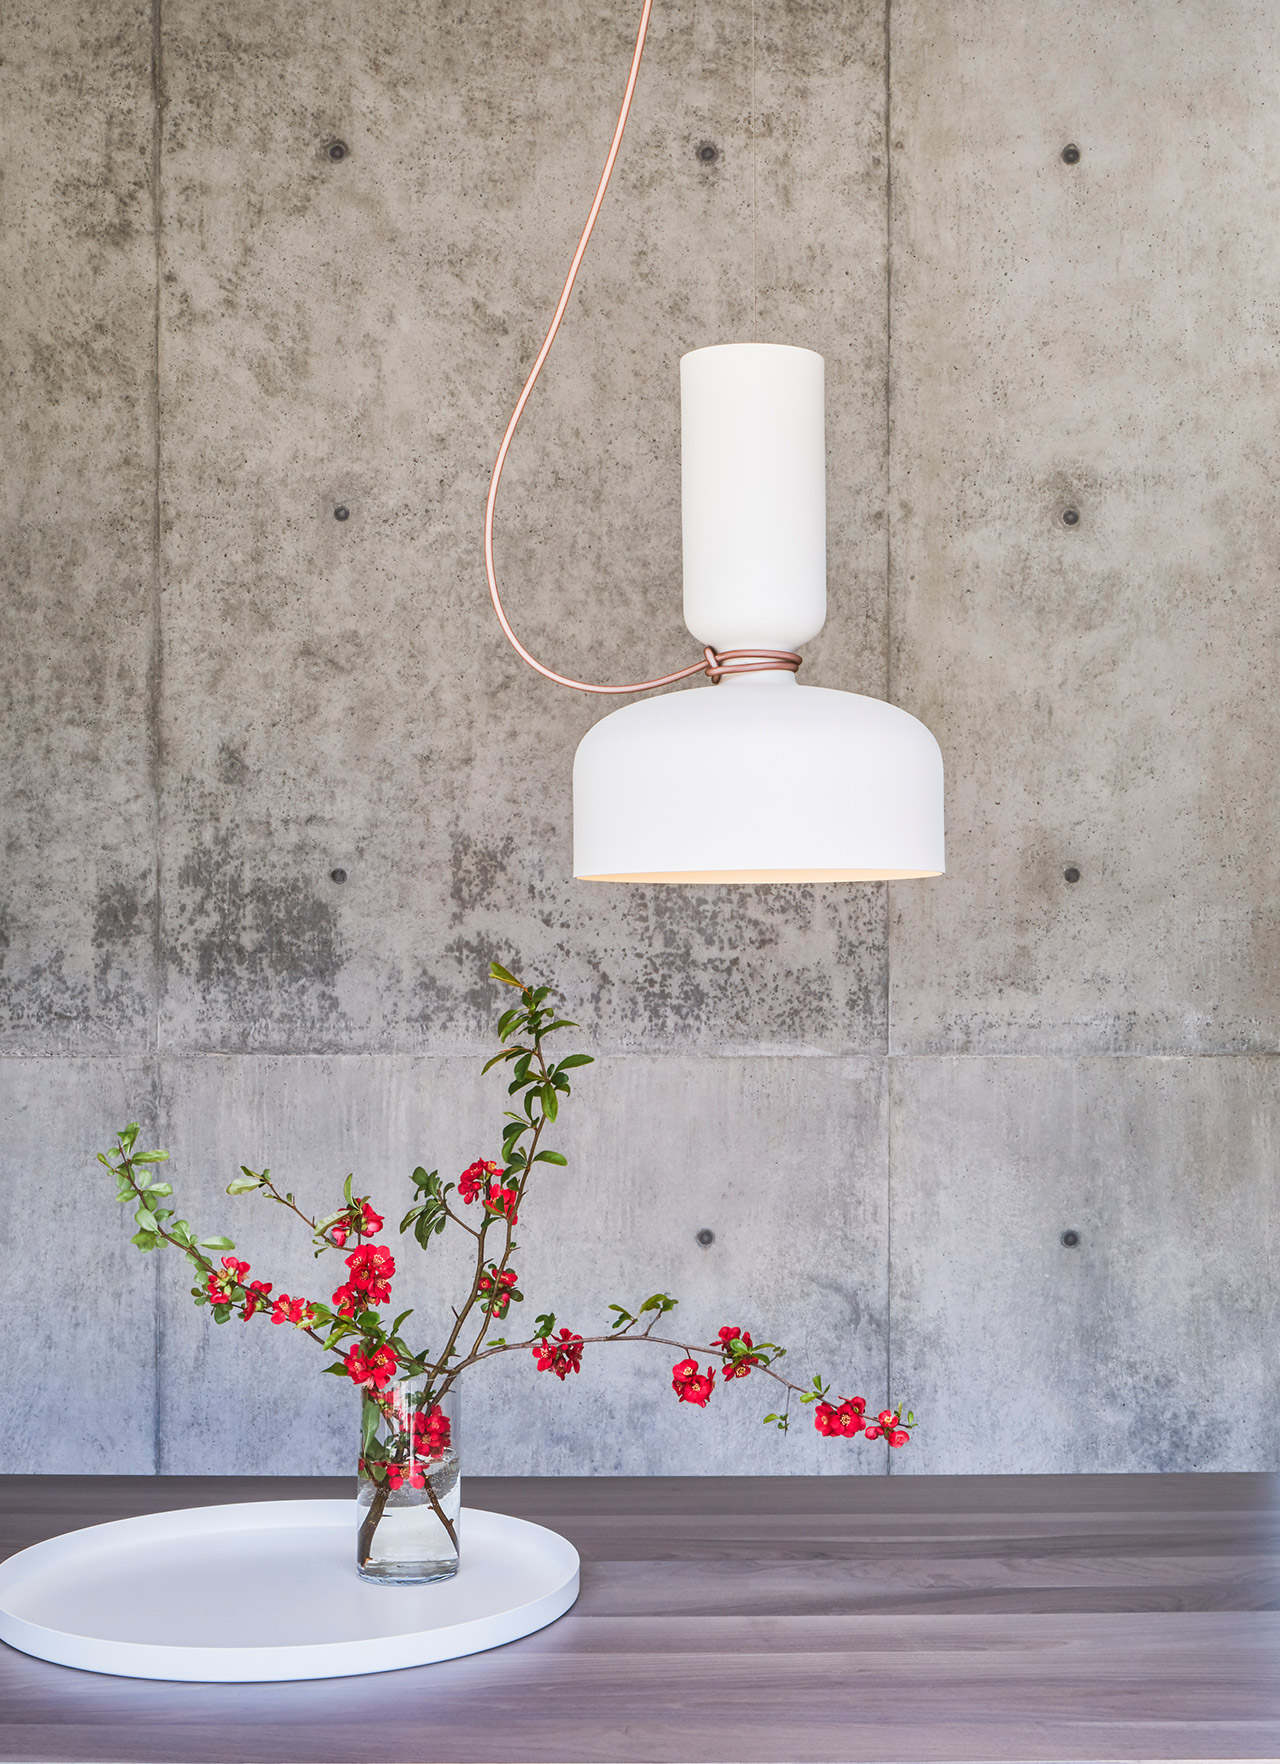 Modern white light fixture above table against a concrete wall.